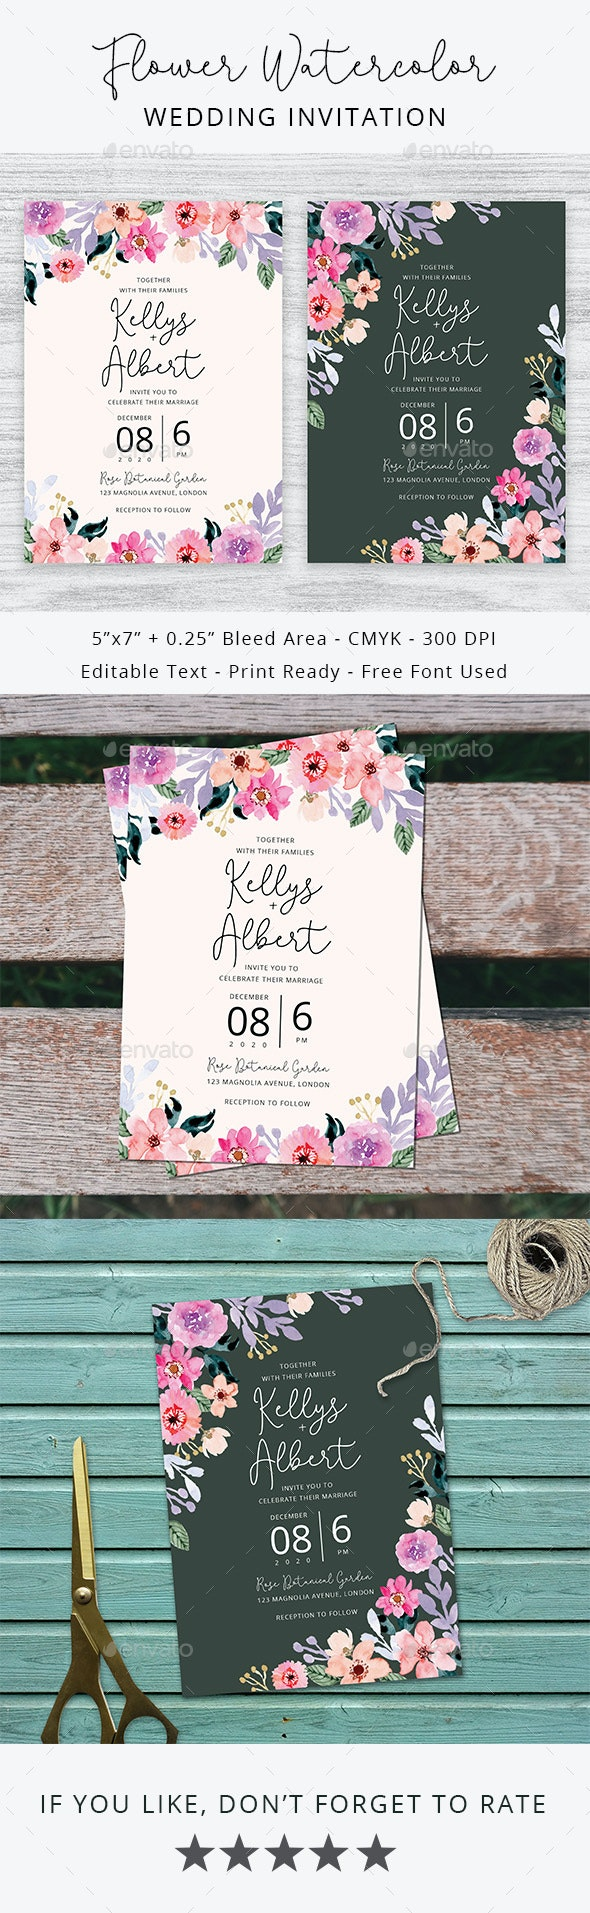 Flower Watercolor Wedding Invitation - Weddings Cards & Invites